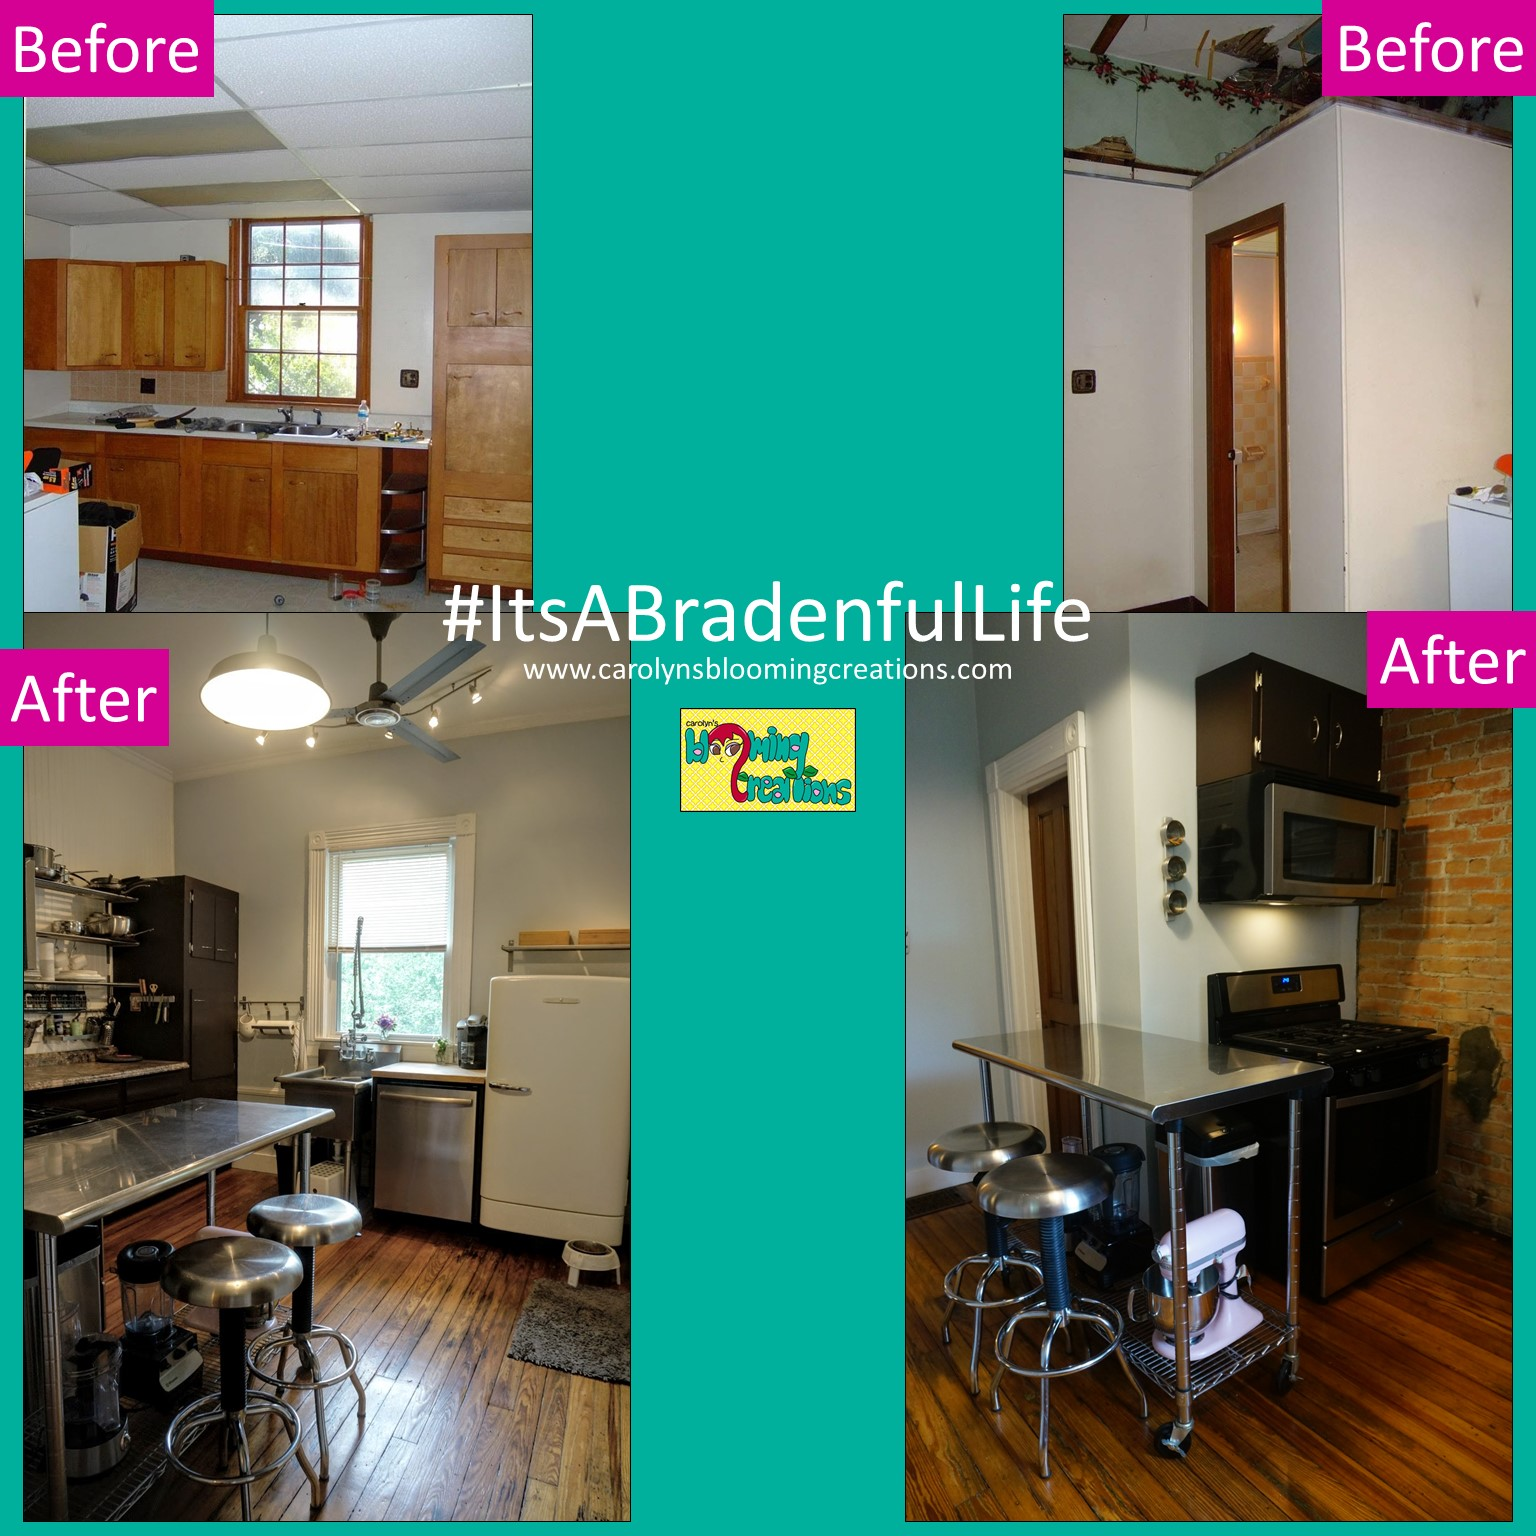 Carolyn J Braden Kitchen 1800s Renovation.jpg